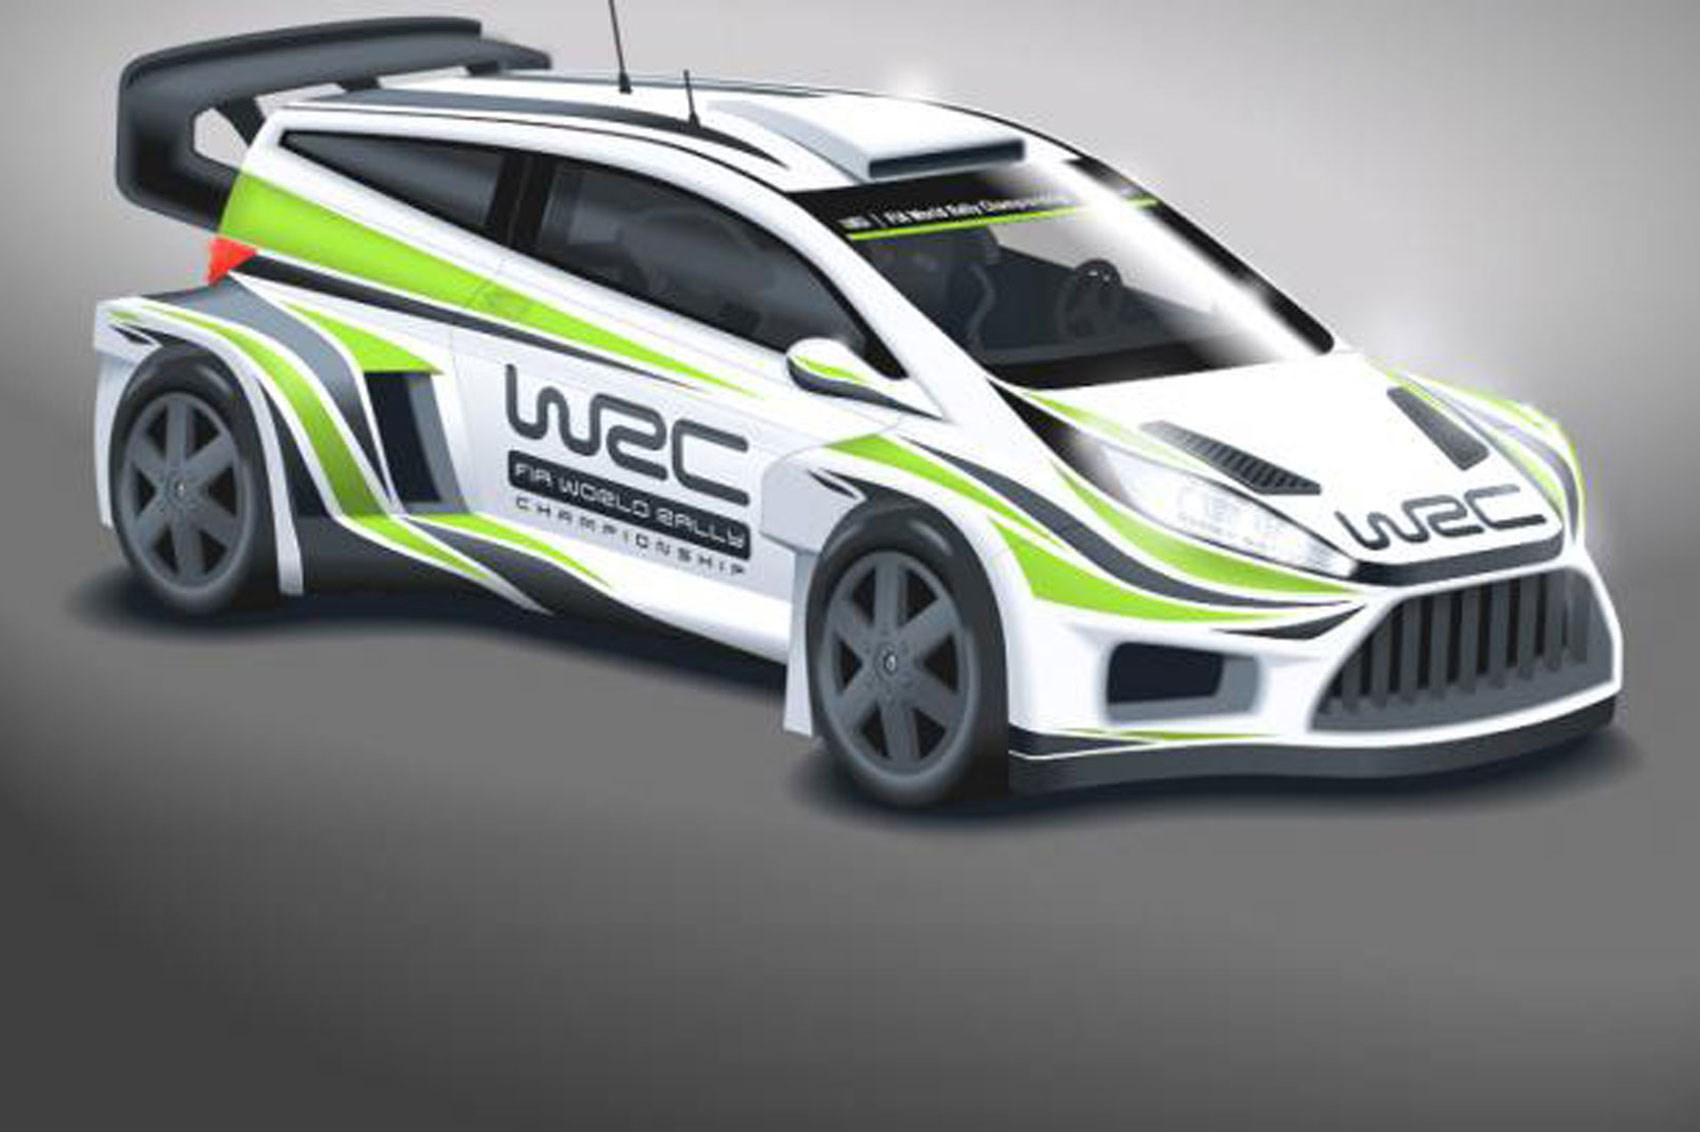 Ultrablogus  Splendid Wild New Look For Wrc Cars In  By Car Magazine With Luxury Wrc Cars Will Get Wider Bodies Bigger Wings And More Power For  With Captivating Honda Odyssey Interior Also Mkc Interior In Addition Toyota Tundra Interior And Rover  Interior As Well As Lancia Thesis Interior Additionally Mazda  Interior Mods From Carmagazinecouk With Ultrablogus  Luxury Wild New Look For Wrc Cars In  By Car Magazine With Captivating Wrc Cars Will Get Wider Bodies Bigger Wings And More Power For  And Splendid Honda Odyssey Interior Also Mkc Interior In Addition Toyota Tundra Interior From Carmagazinecouk